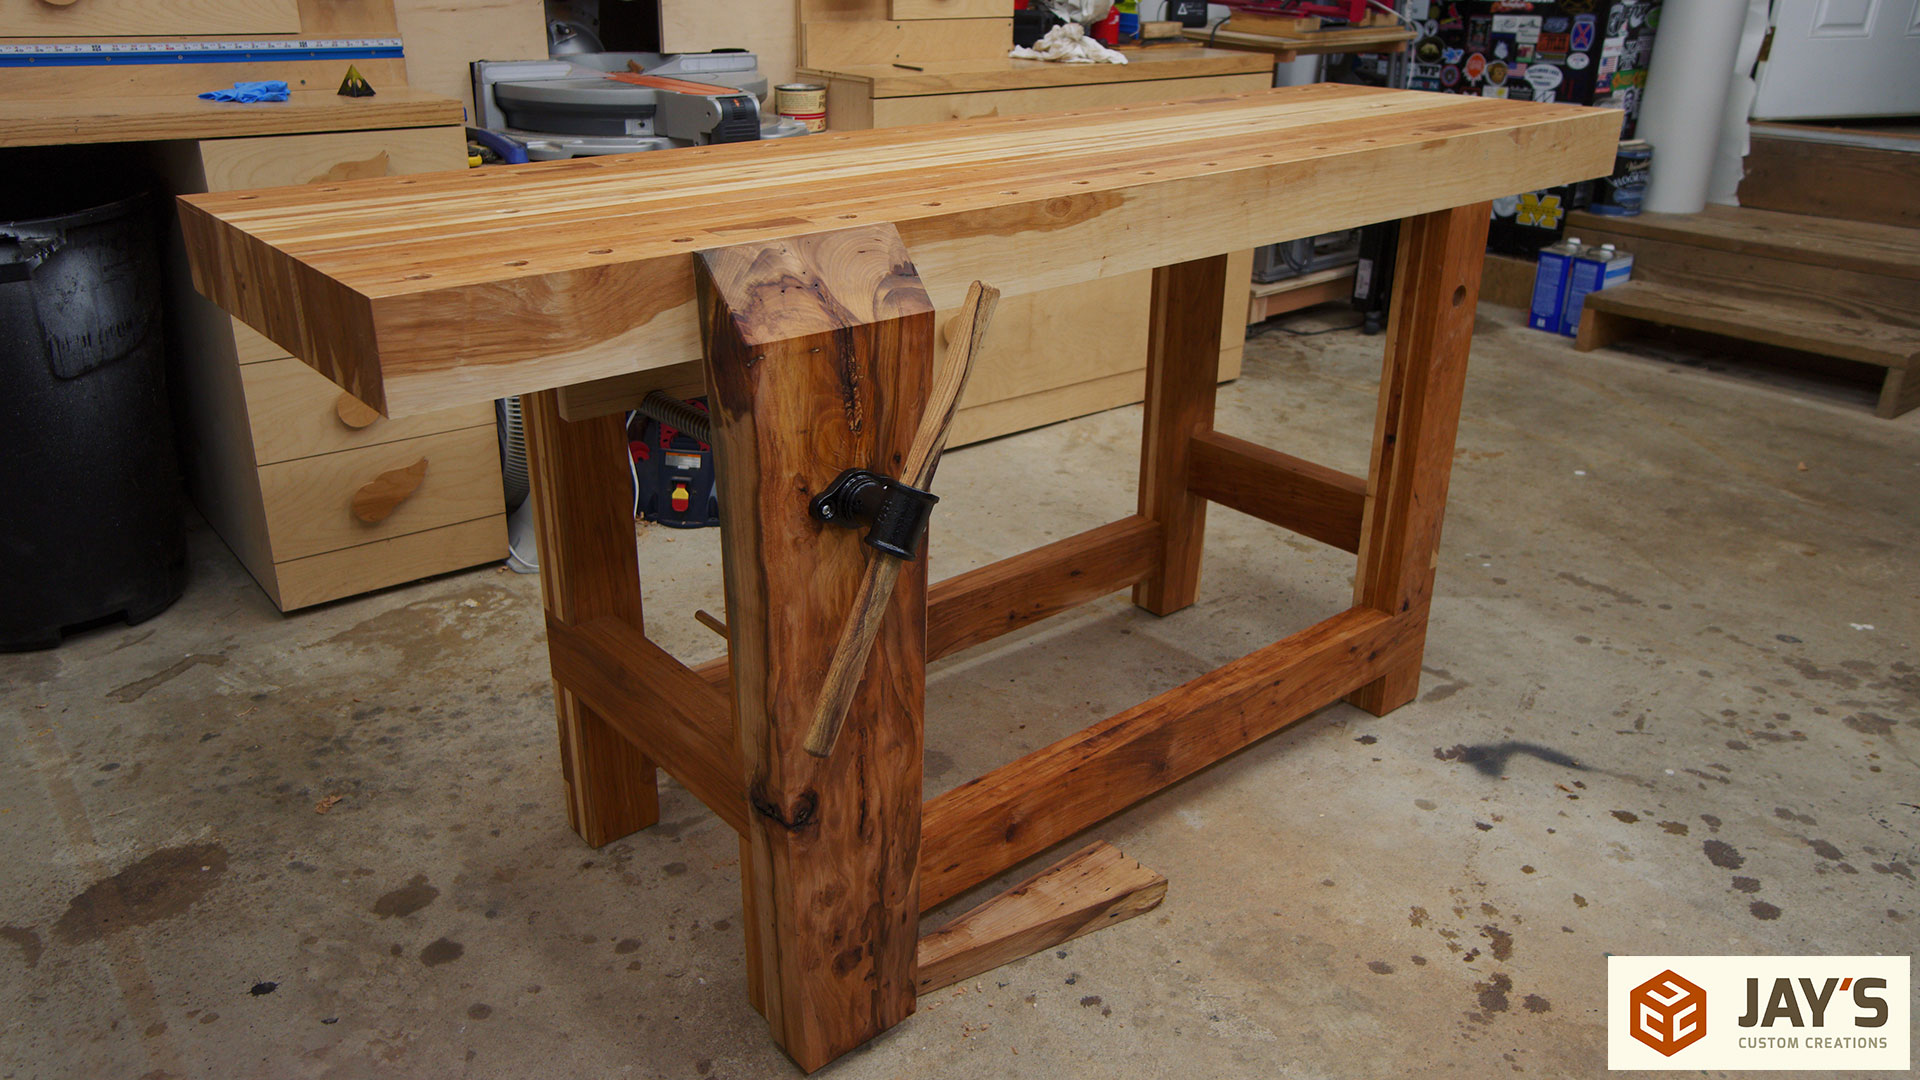 vice jay pallet bates woodshop woodworking pipe bench workbench works jackman installation wood clamp vise